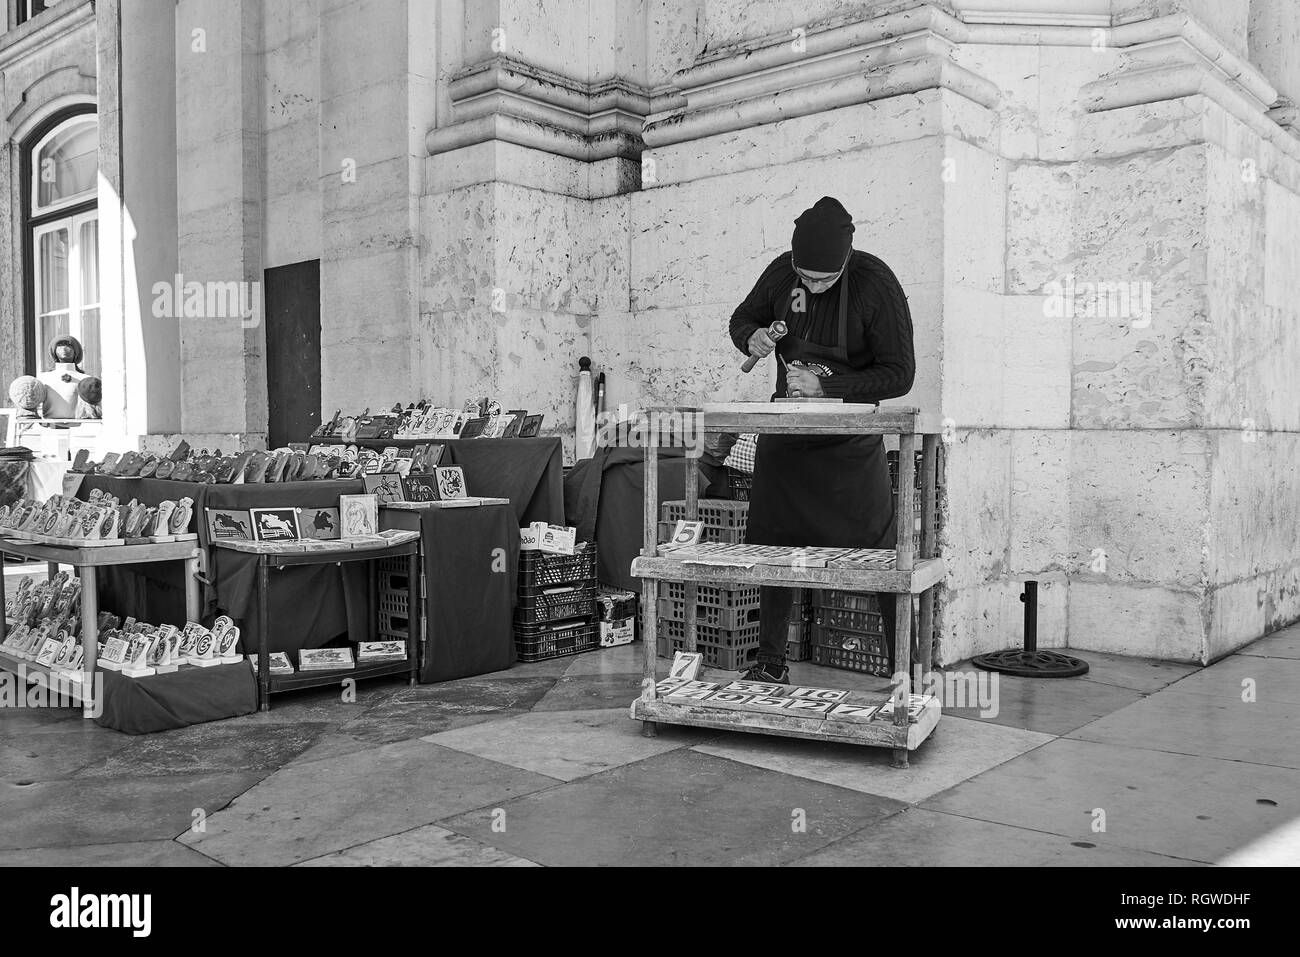 Man carving tiles in Comércio Plaza, Lisbon, Portugal - Stock Image